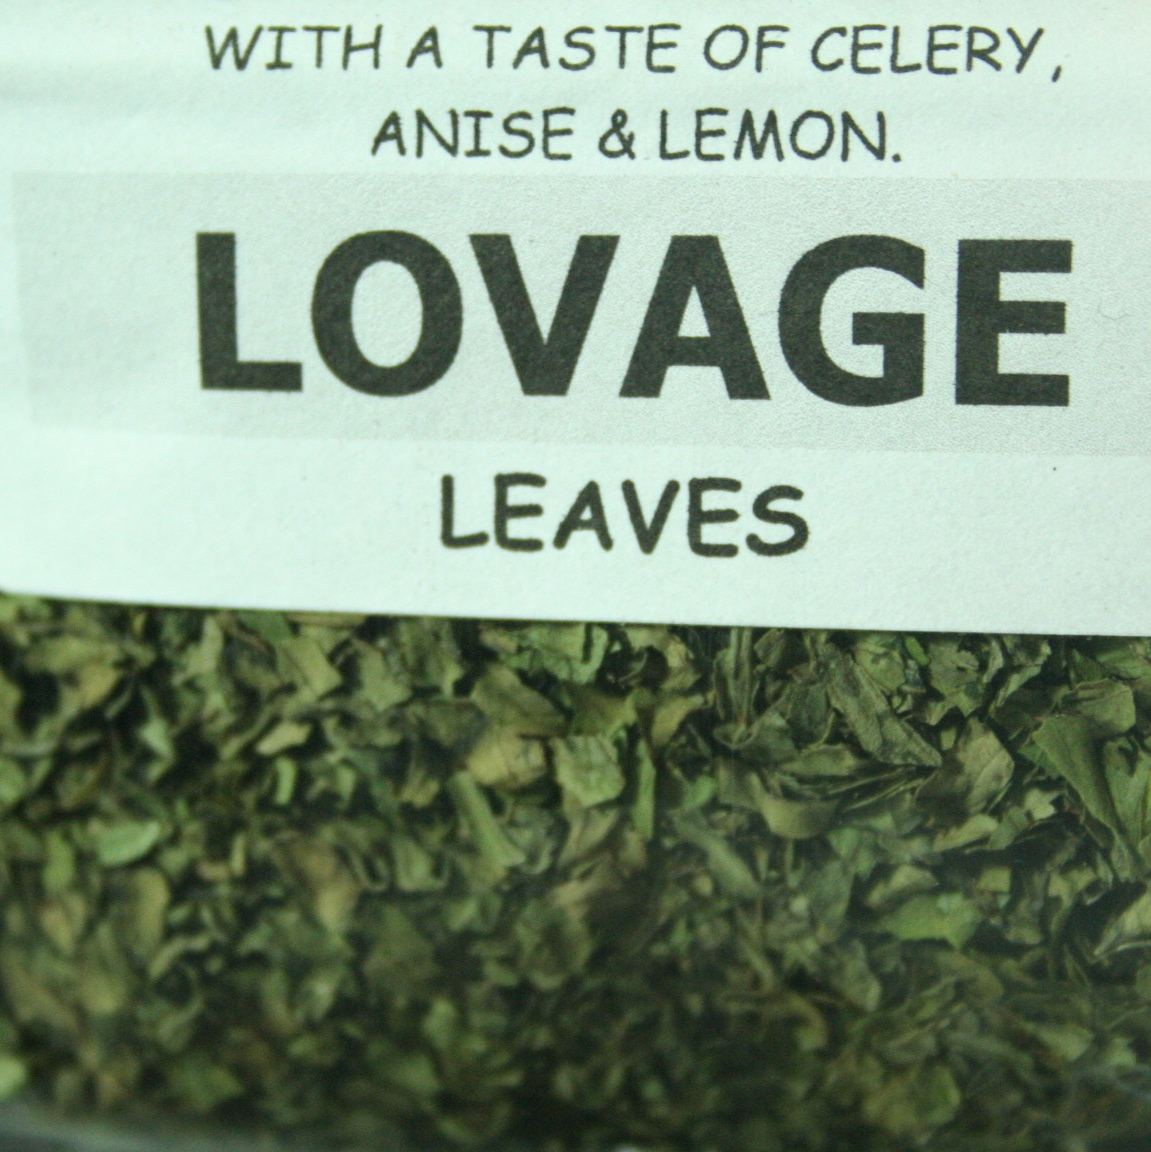 Dried Lovage